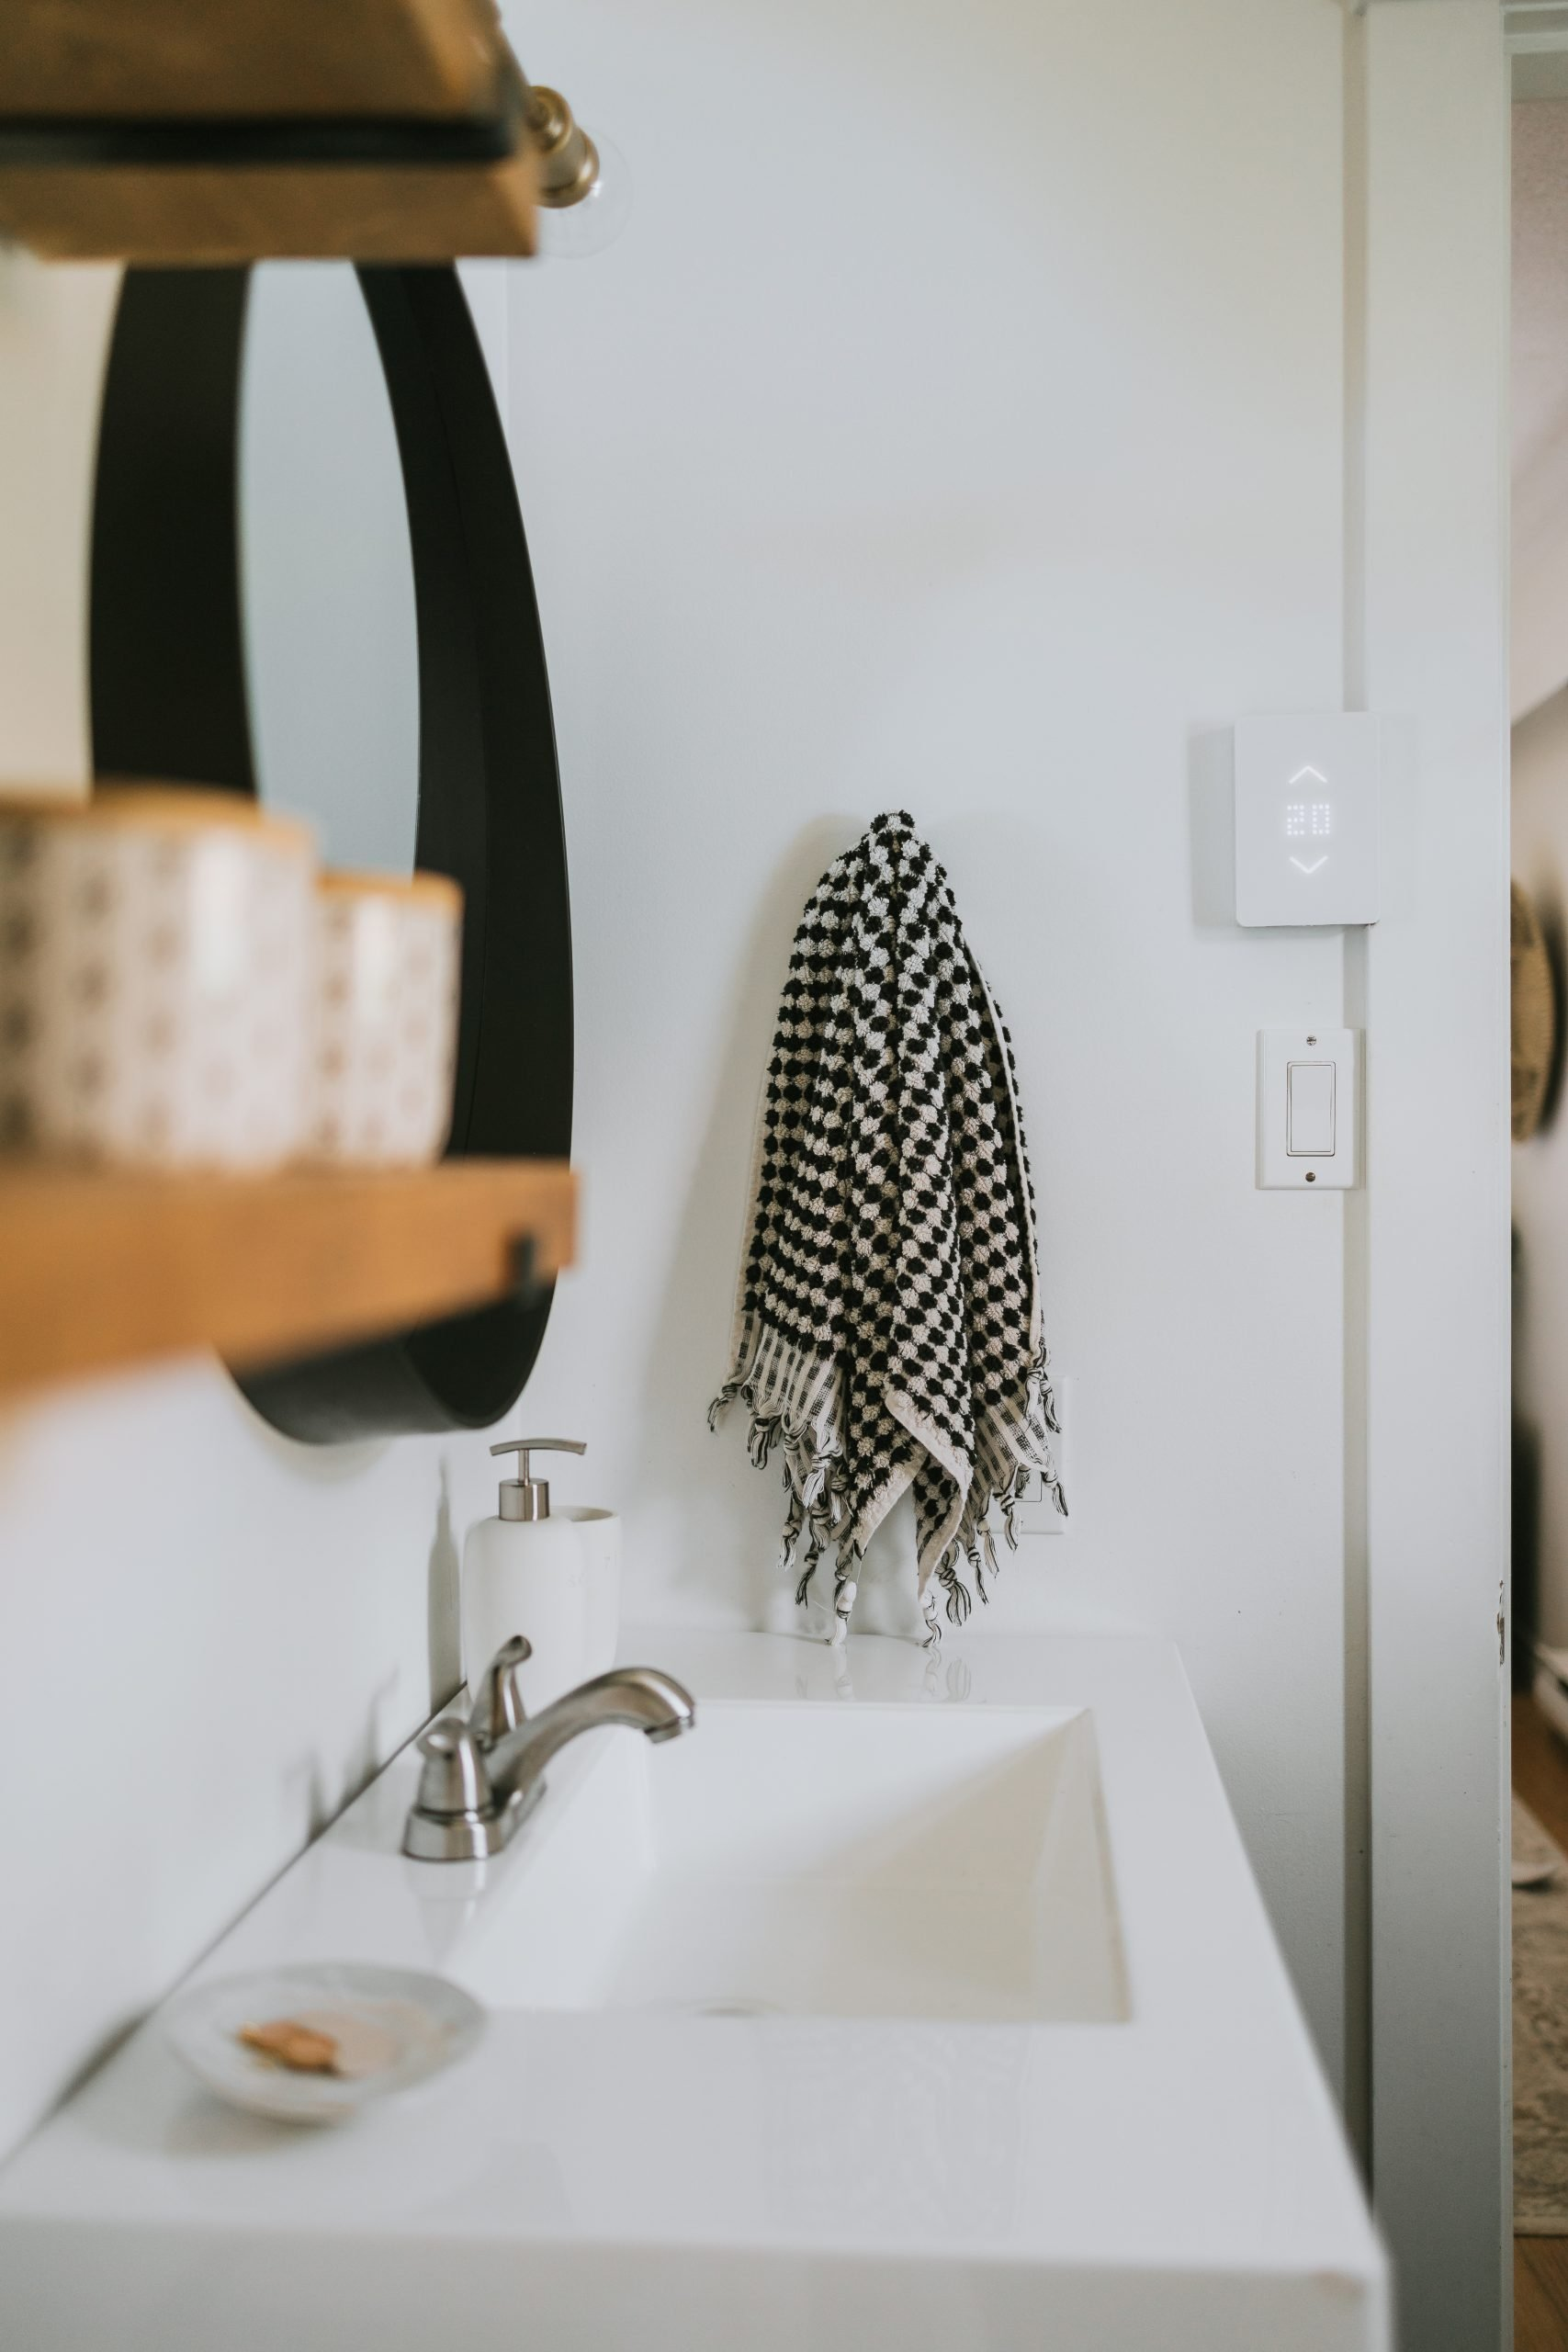 Modern Free Bathroom Refresh! I shopped my home and thrifted a few items to transform our tired and dreary master bathroom into a modern bathroom